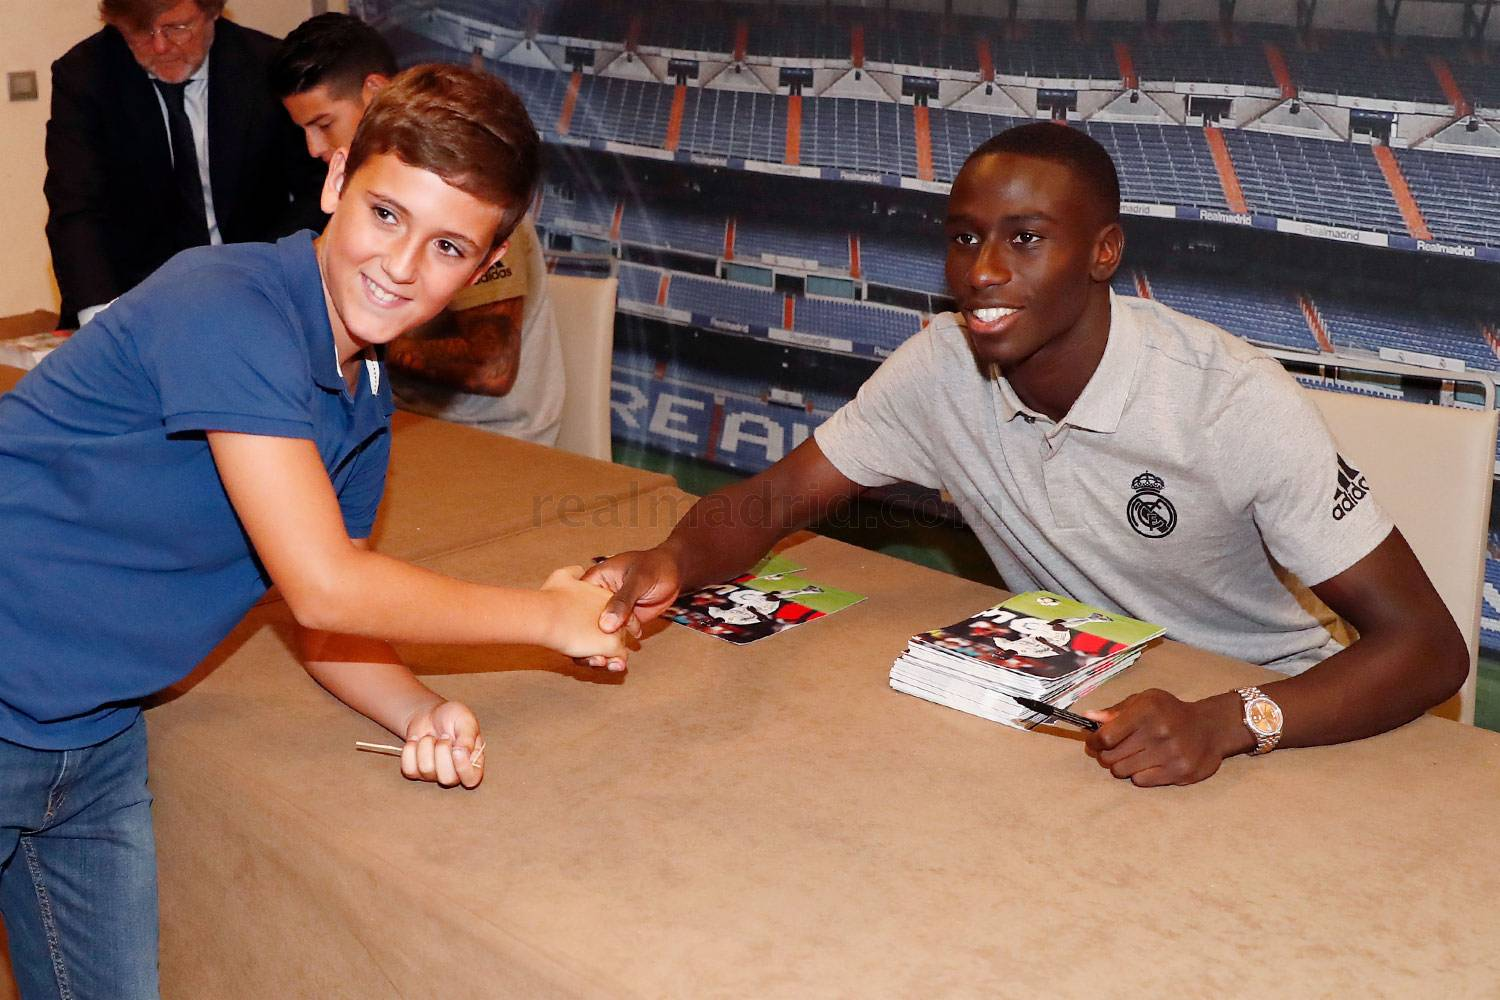 Real Madrid - James y Mendy firmaron autógrafos en Sevilla - 22-09-2019